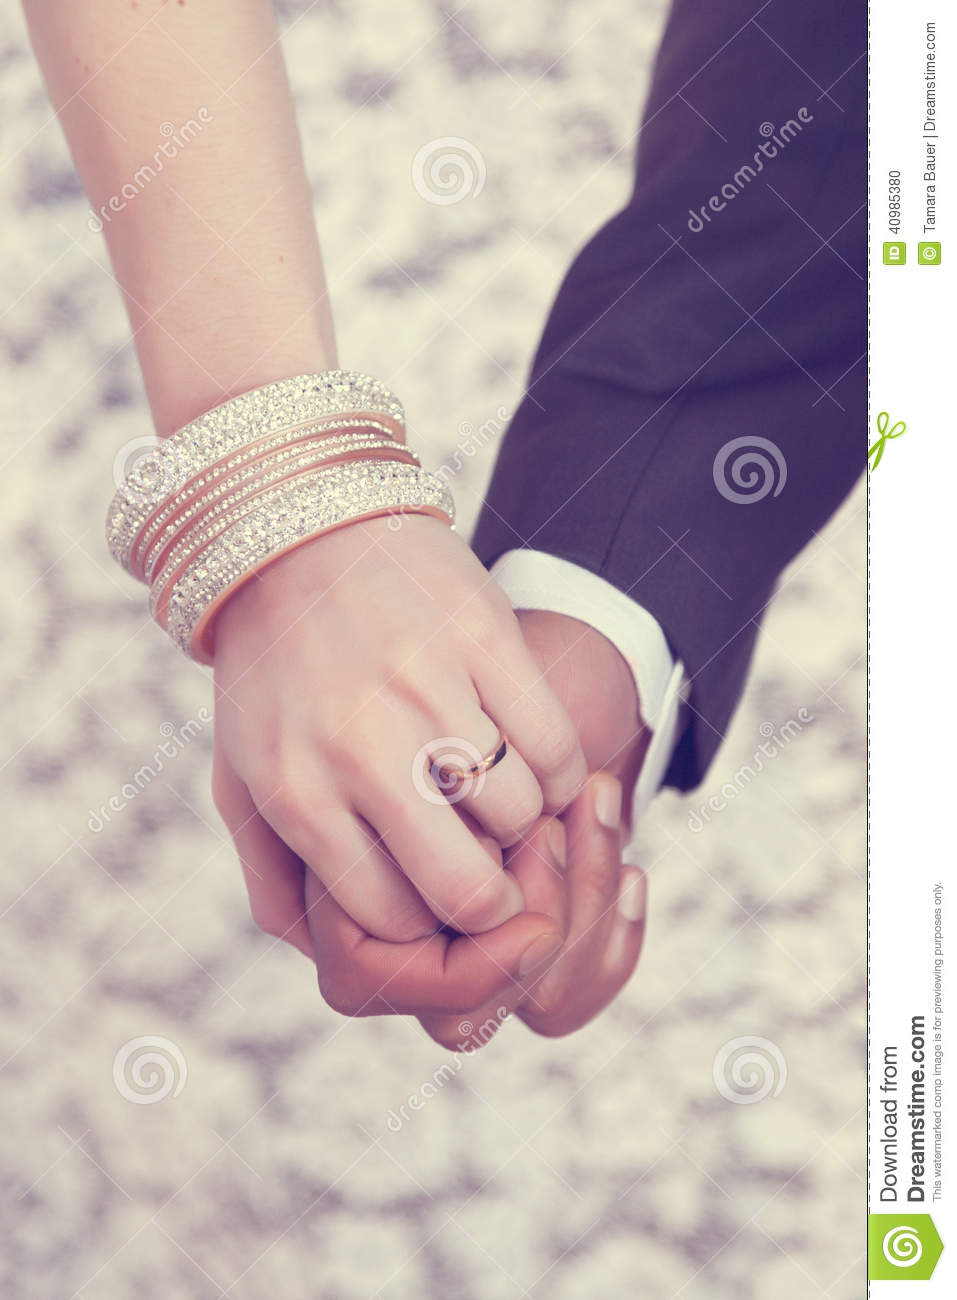 Wedding ring on hand stock photo Image of celebration 40985380